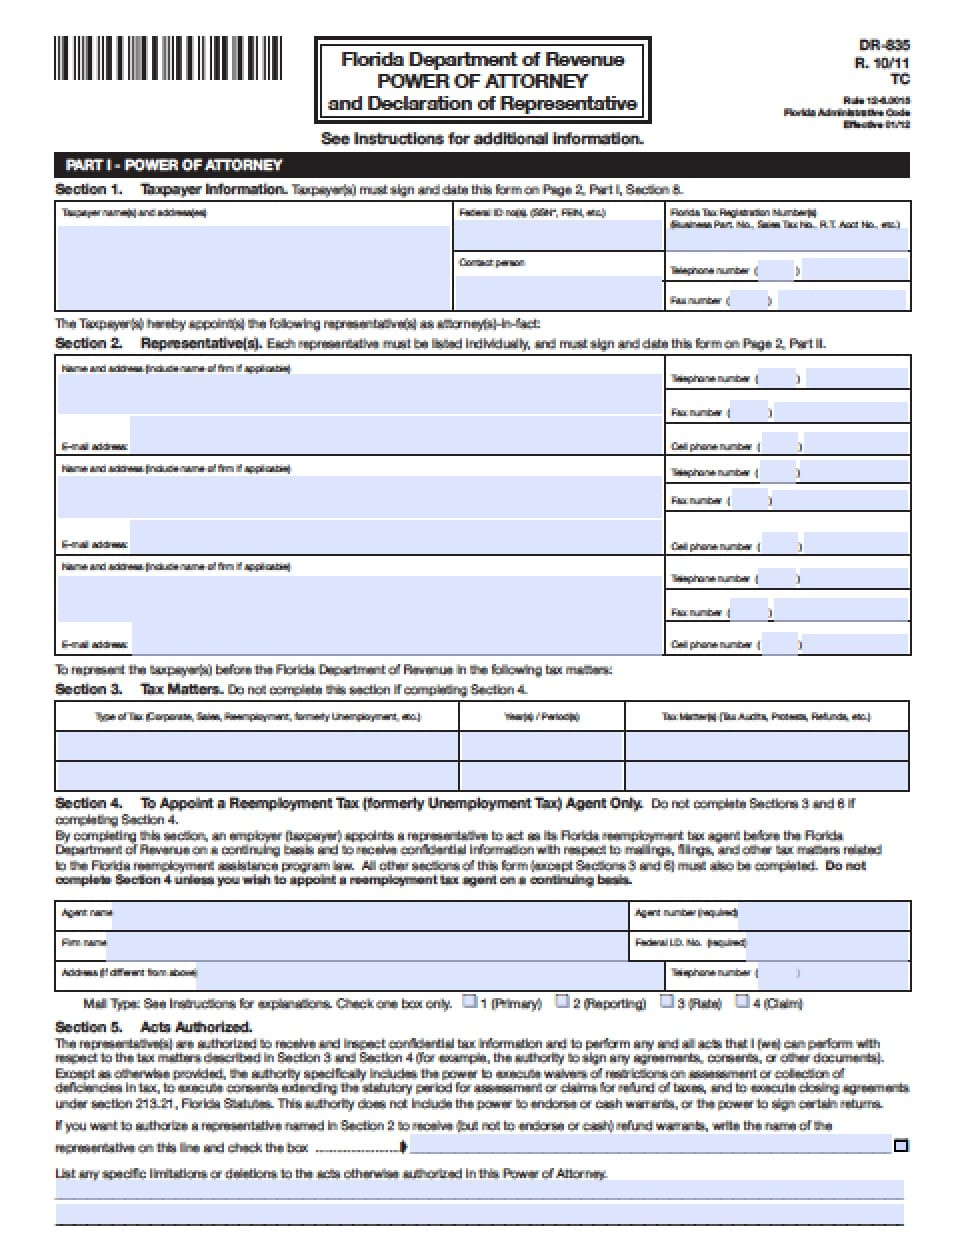 form rt 6 florida form rt6 - Athiy.khudothiharborcity.co